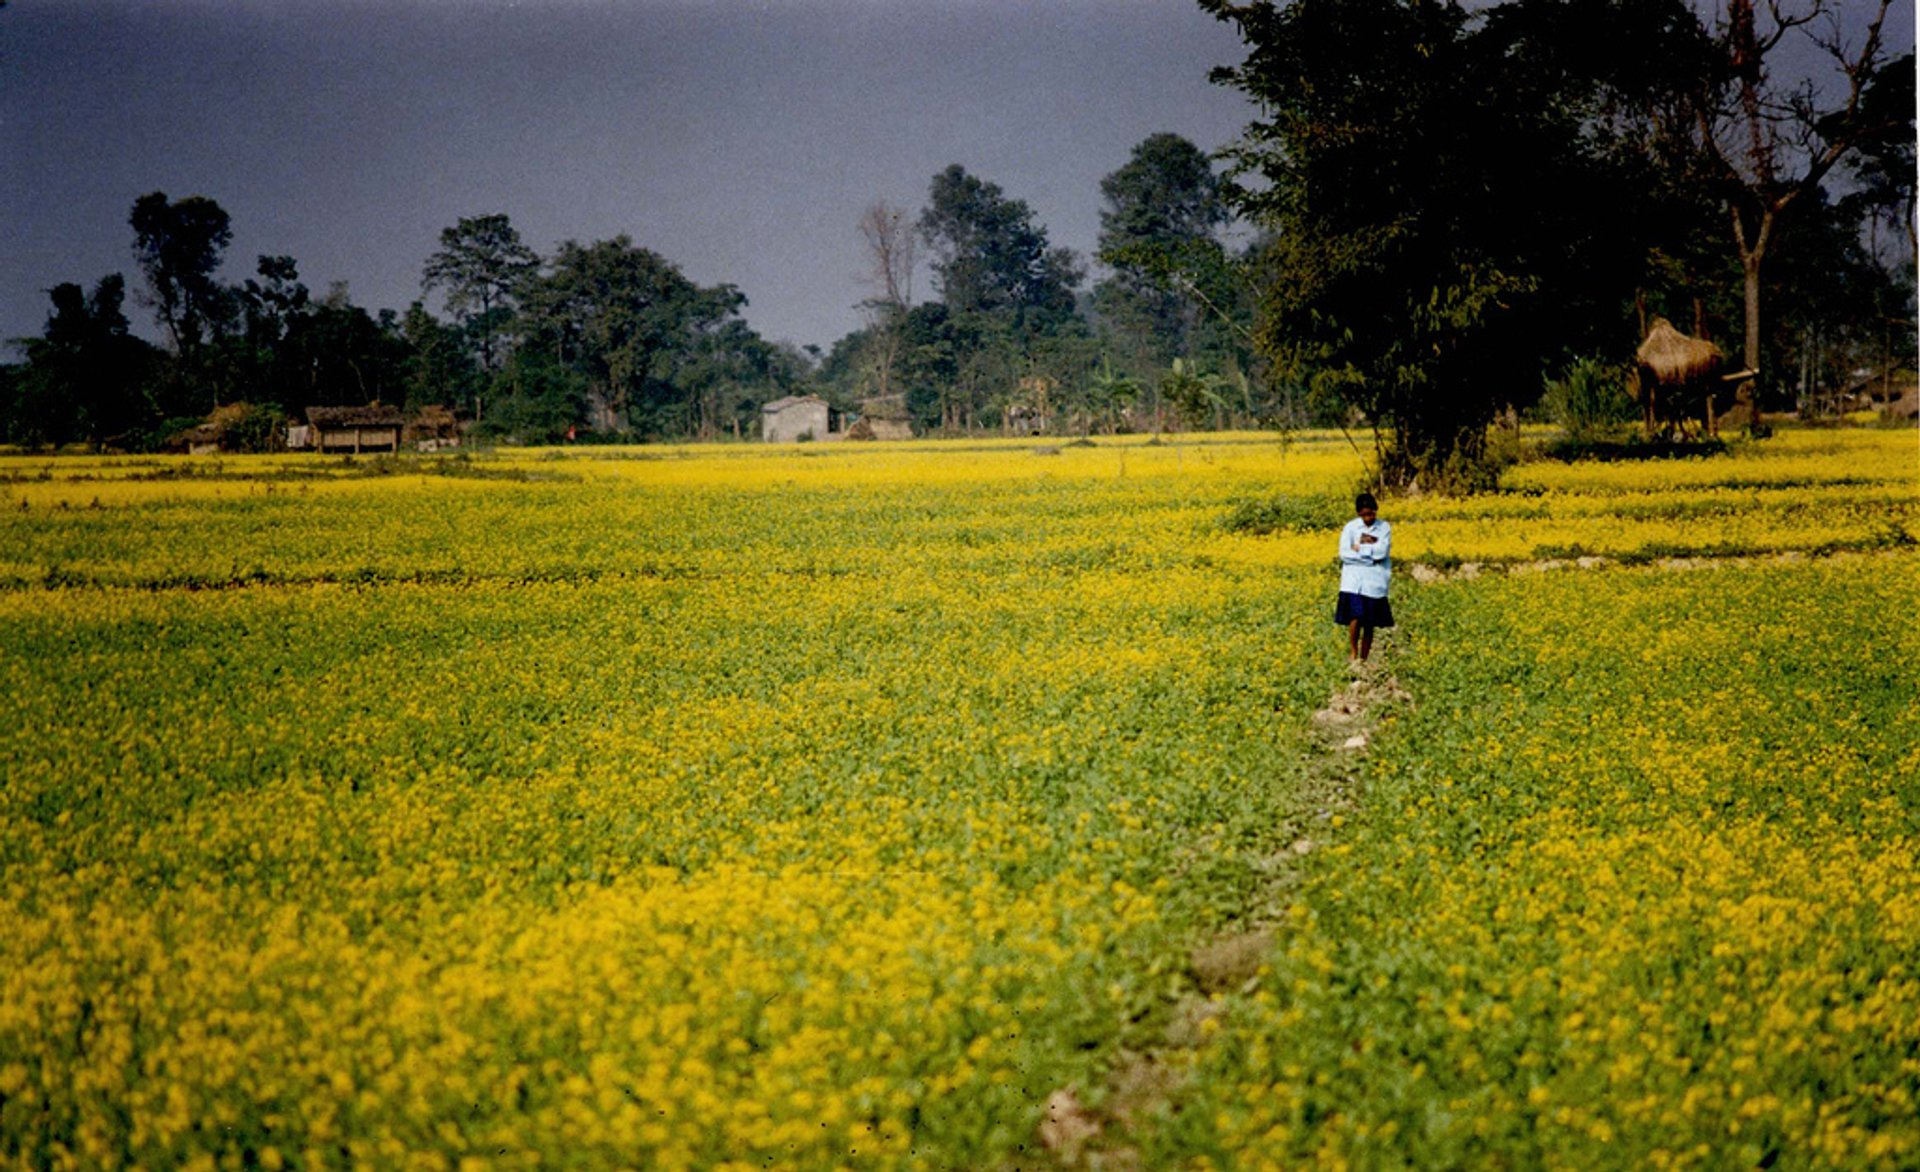 Mustard Fields in Bloom in Nepal 2020 - Best Time